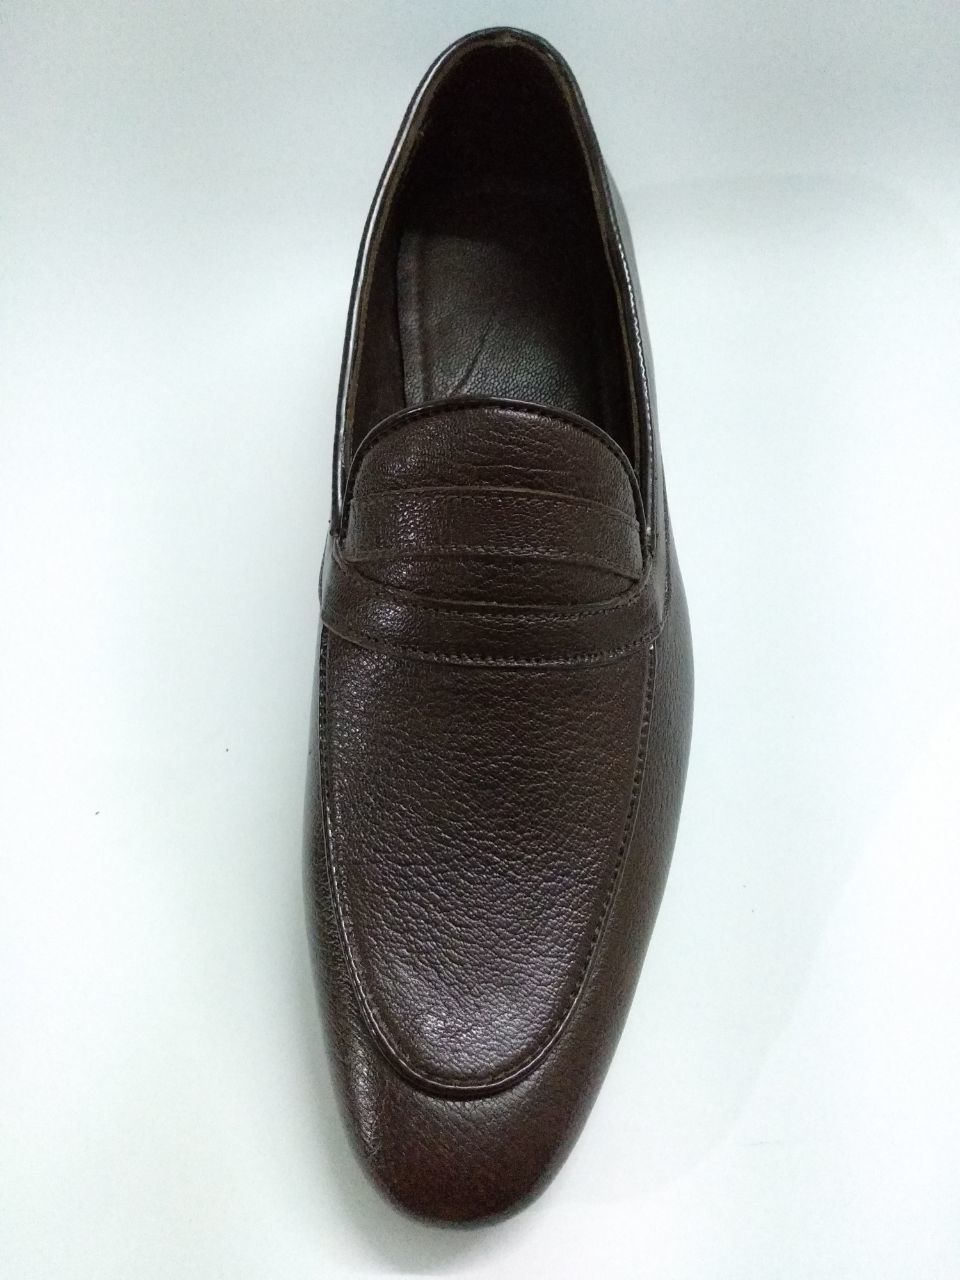 LEATHER DESIGNER CASUAL SHOES FOR MEN'S